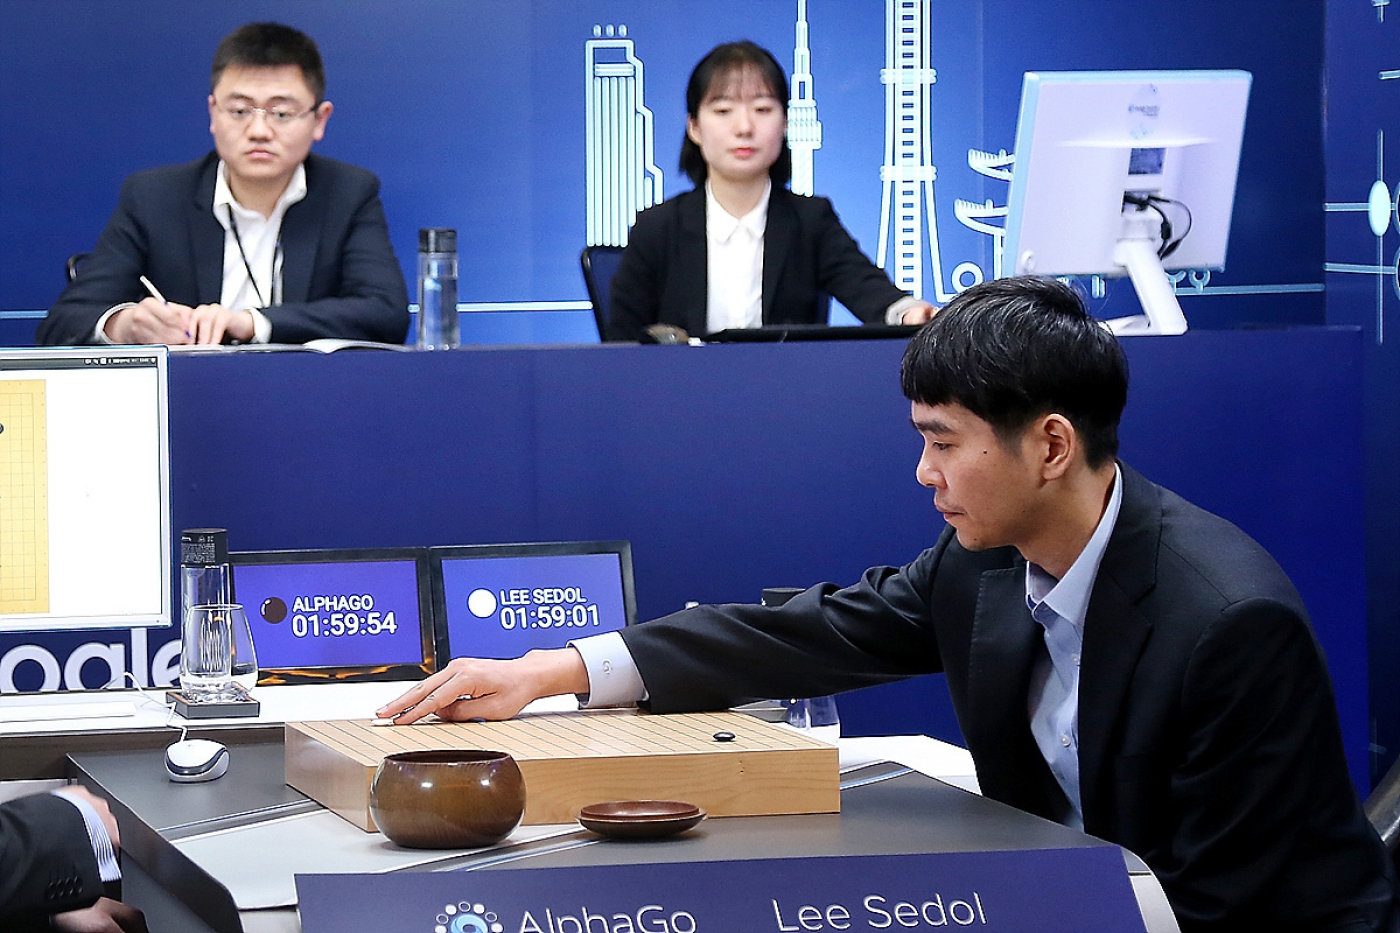 019 Alphago Sedol Research Paper Google Deepmind Outstanding Papers Full